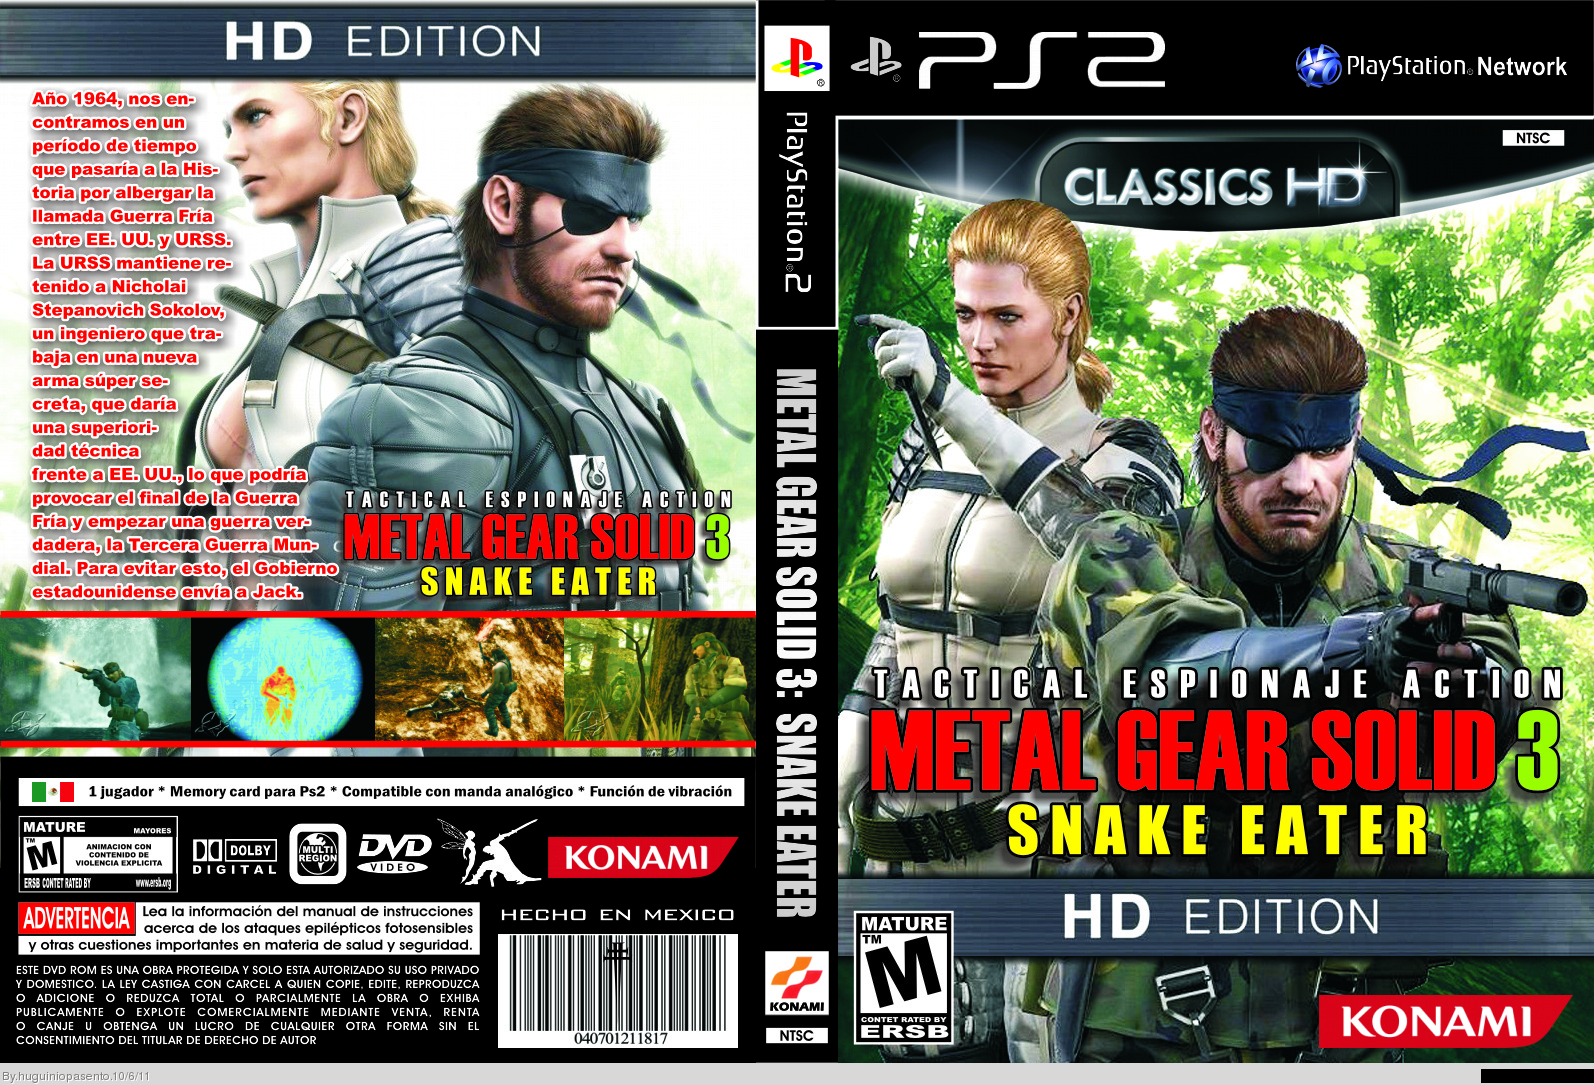 Metal Gear Solid 3: Snake Eater box cover